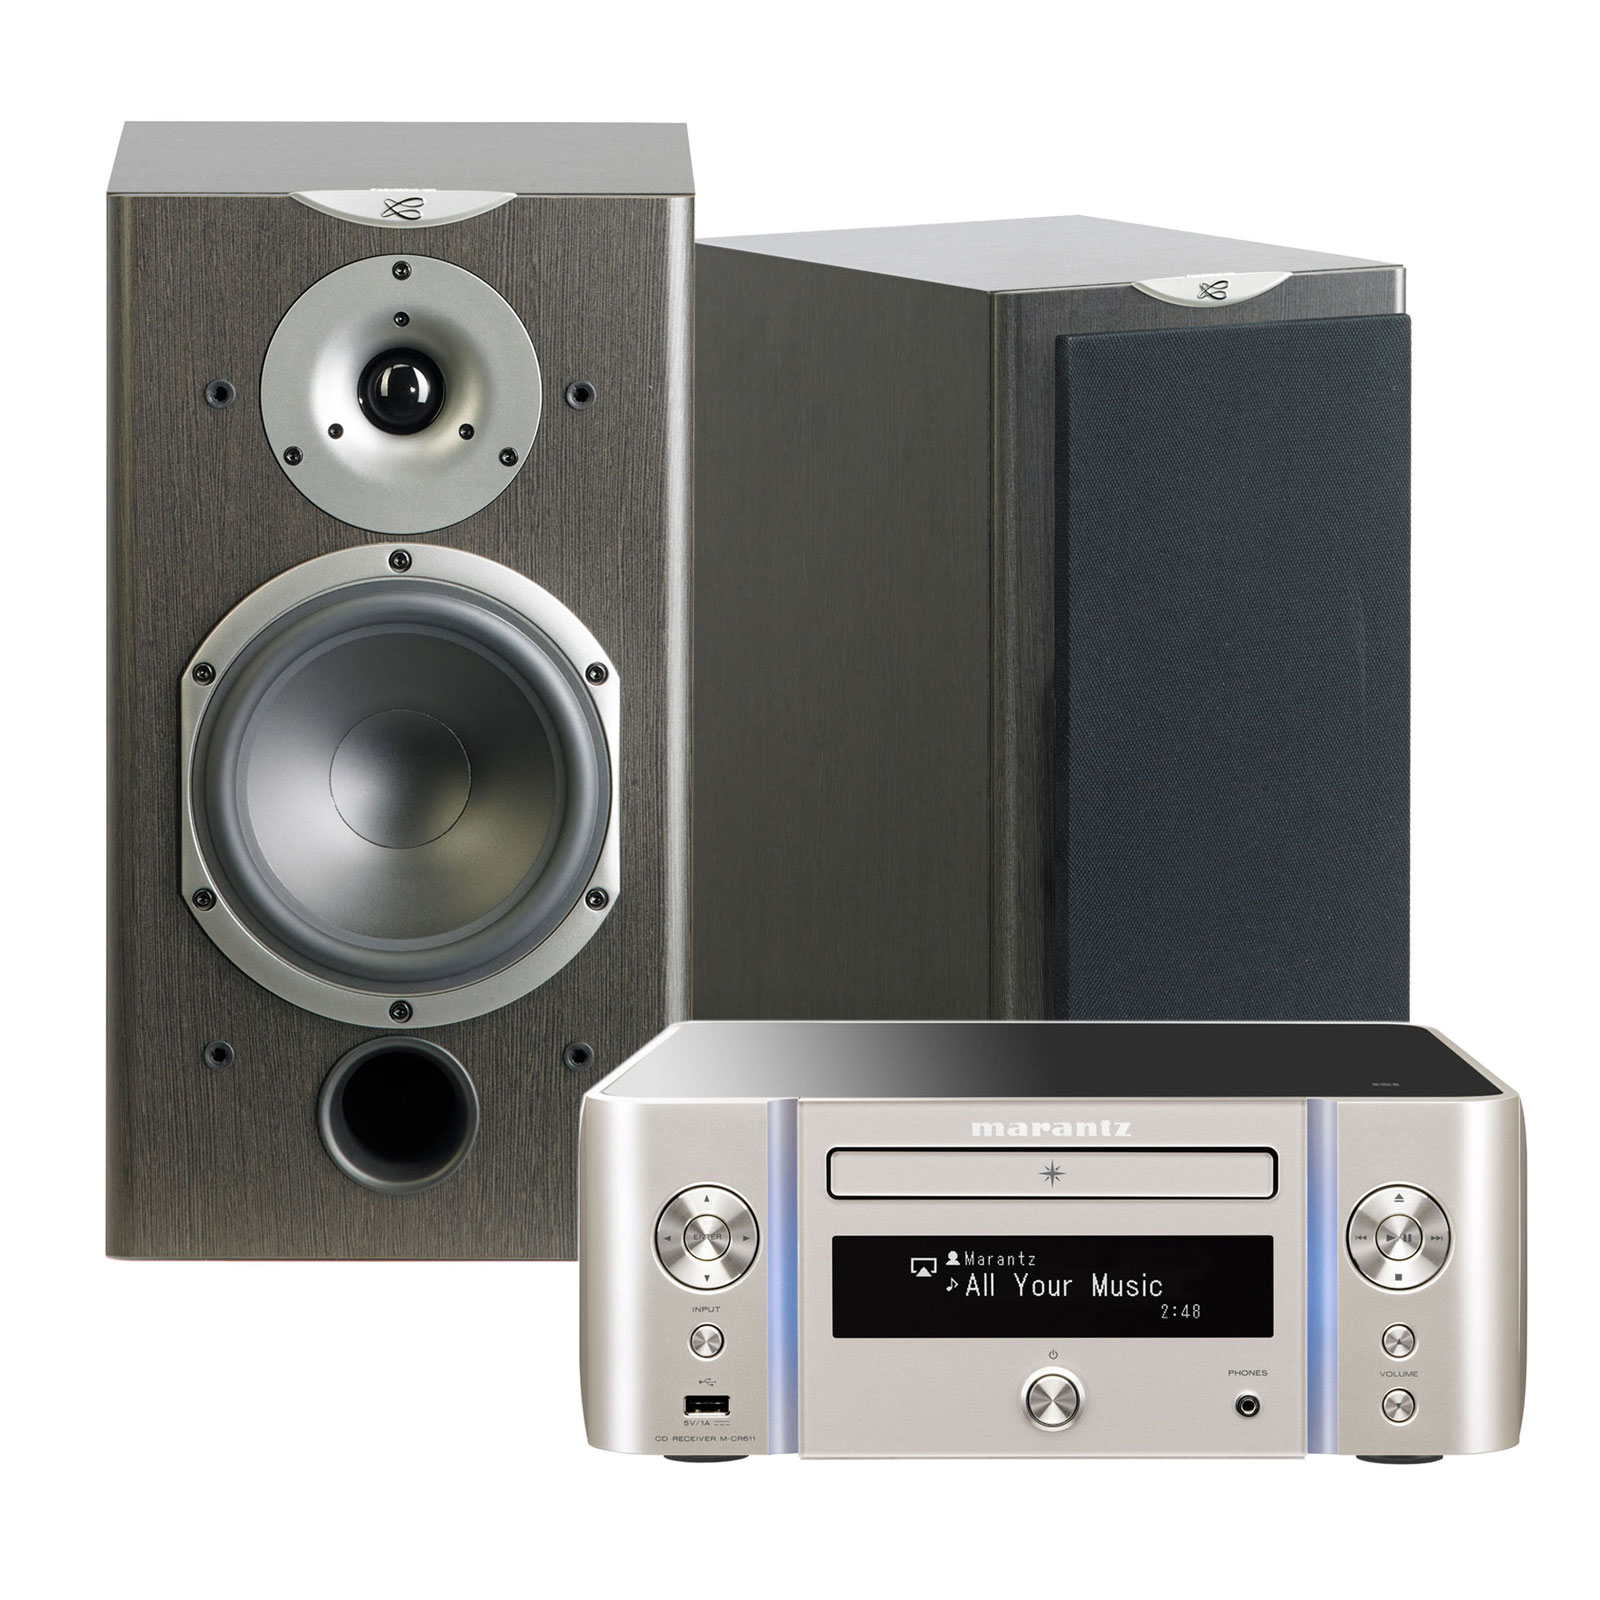 marantz melody stream m cr611 argent or cabasse antigua mt360 wengu cha ne hifi marantz sur. Black Bedroom Furniture Sets. Home Design Ideas